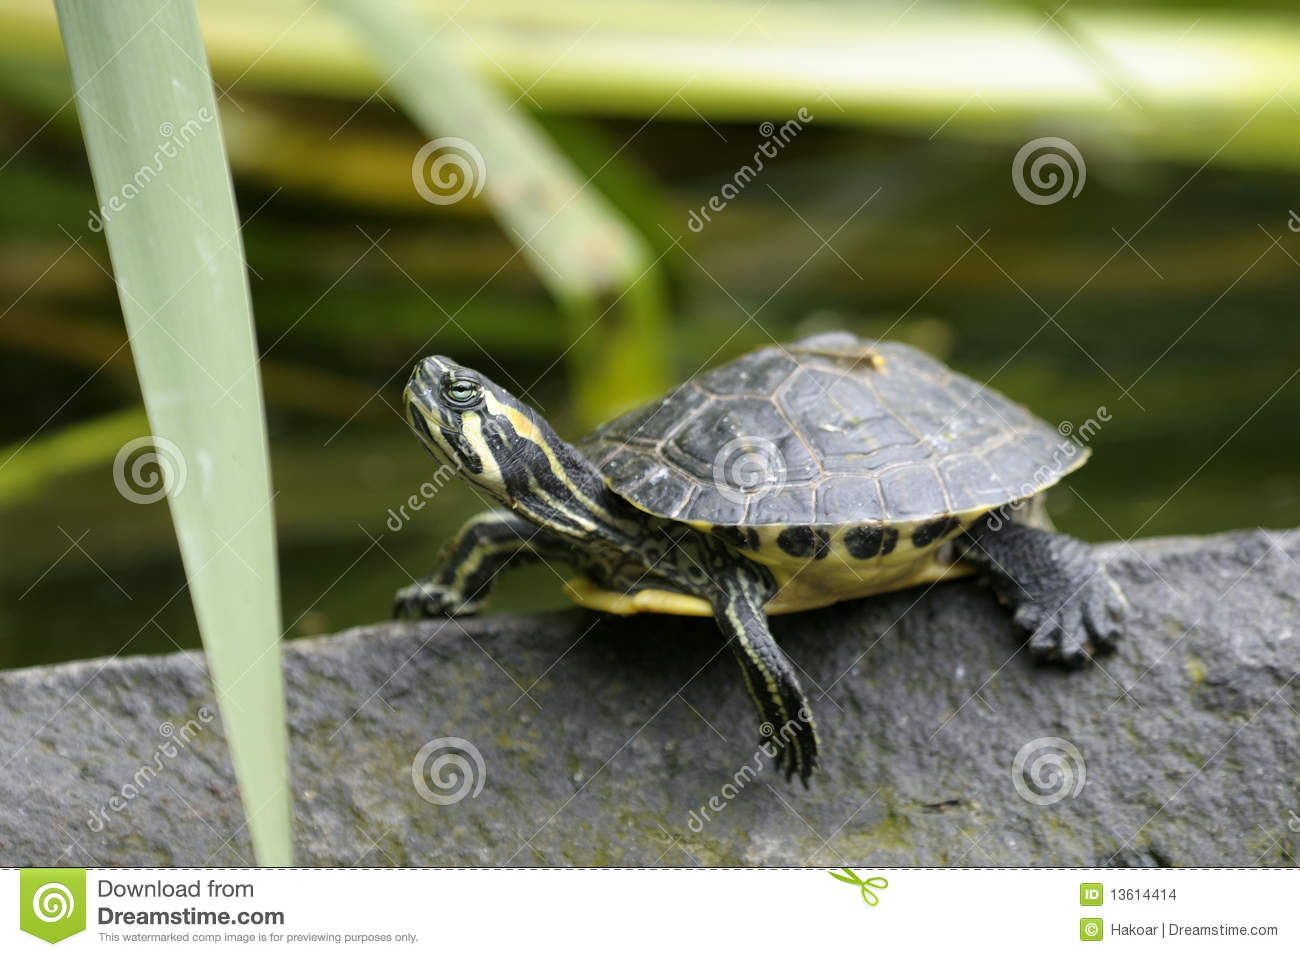 Cumberland slider trachemys scripta troostii stock photo for Trachemys scripta